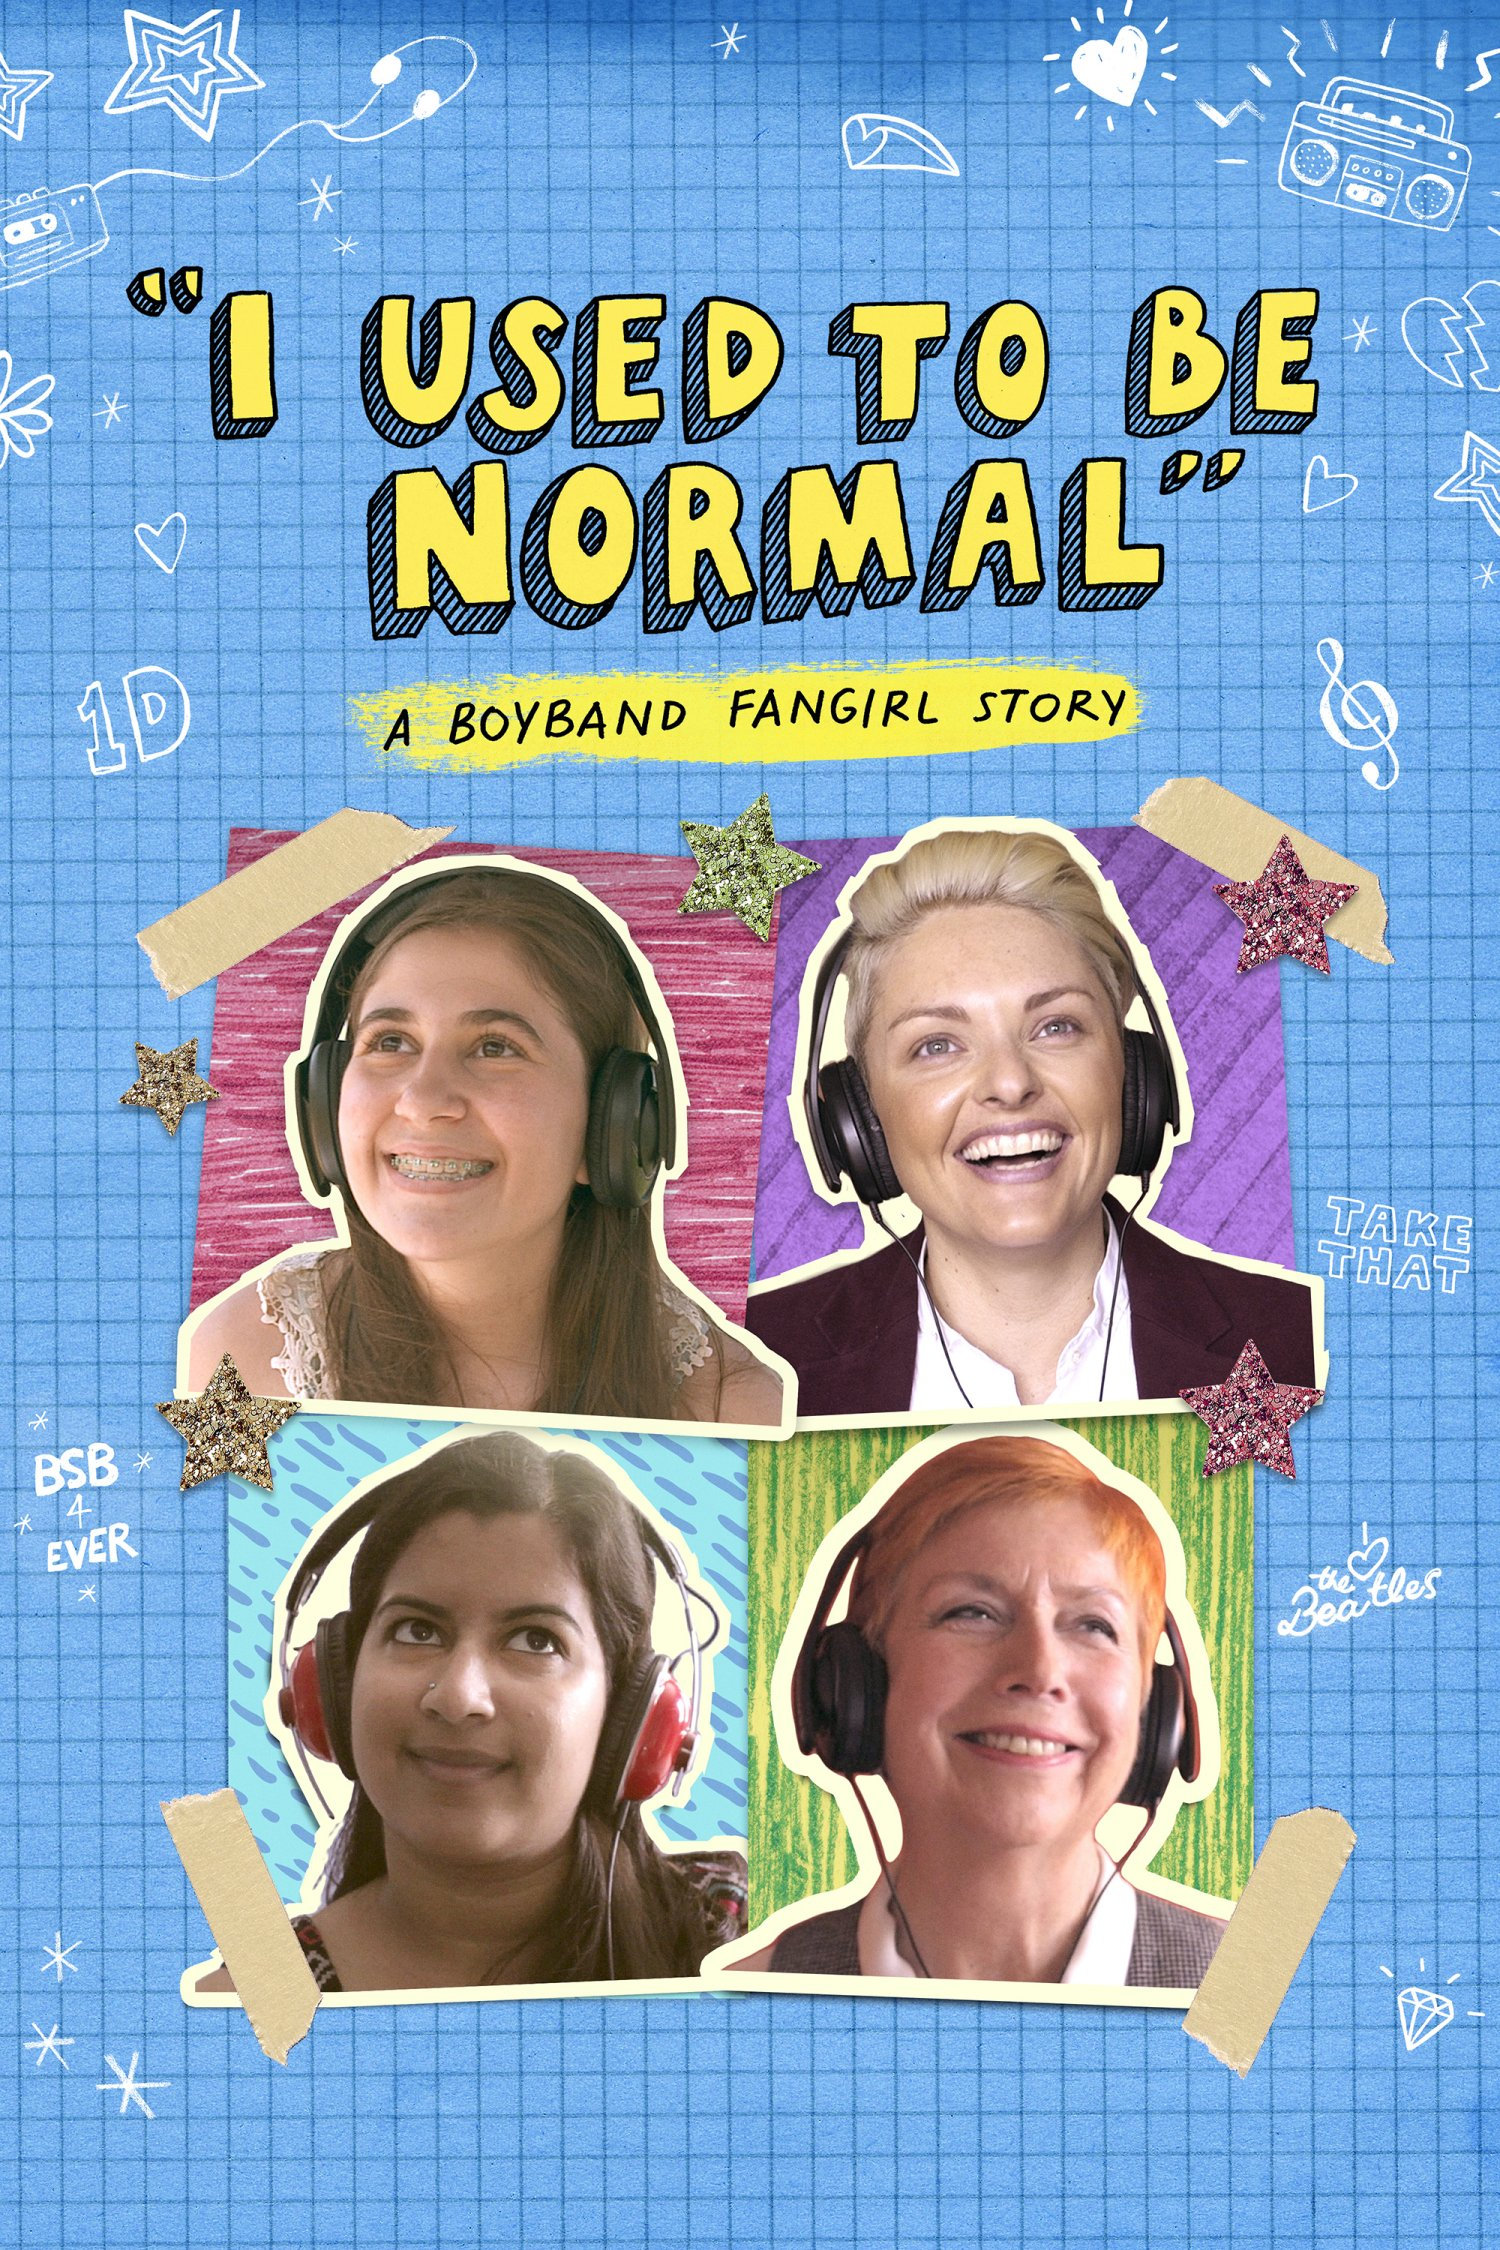 I_USED_TO_BE_NORMAL_Key Art 2000 x 3000